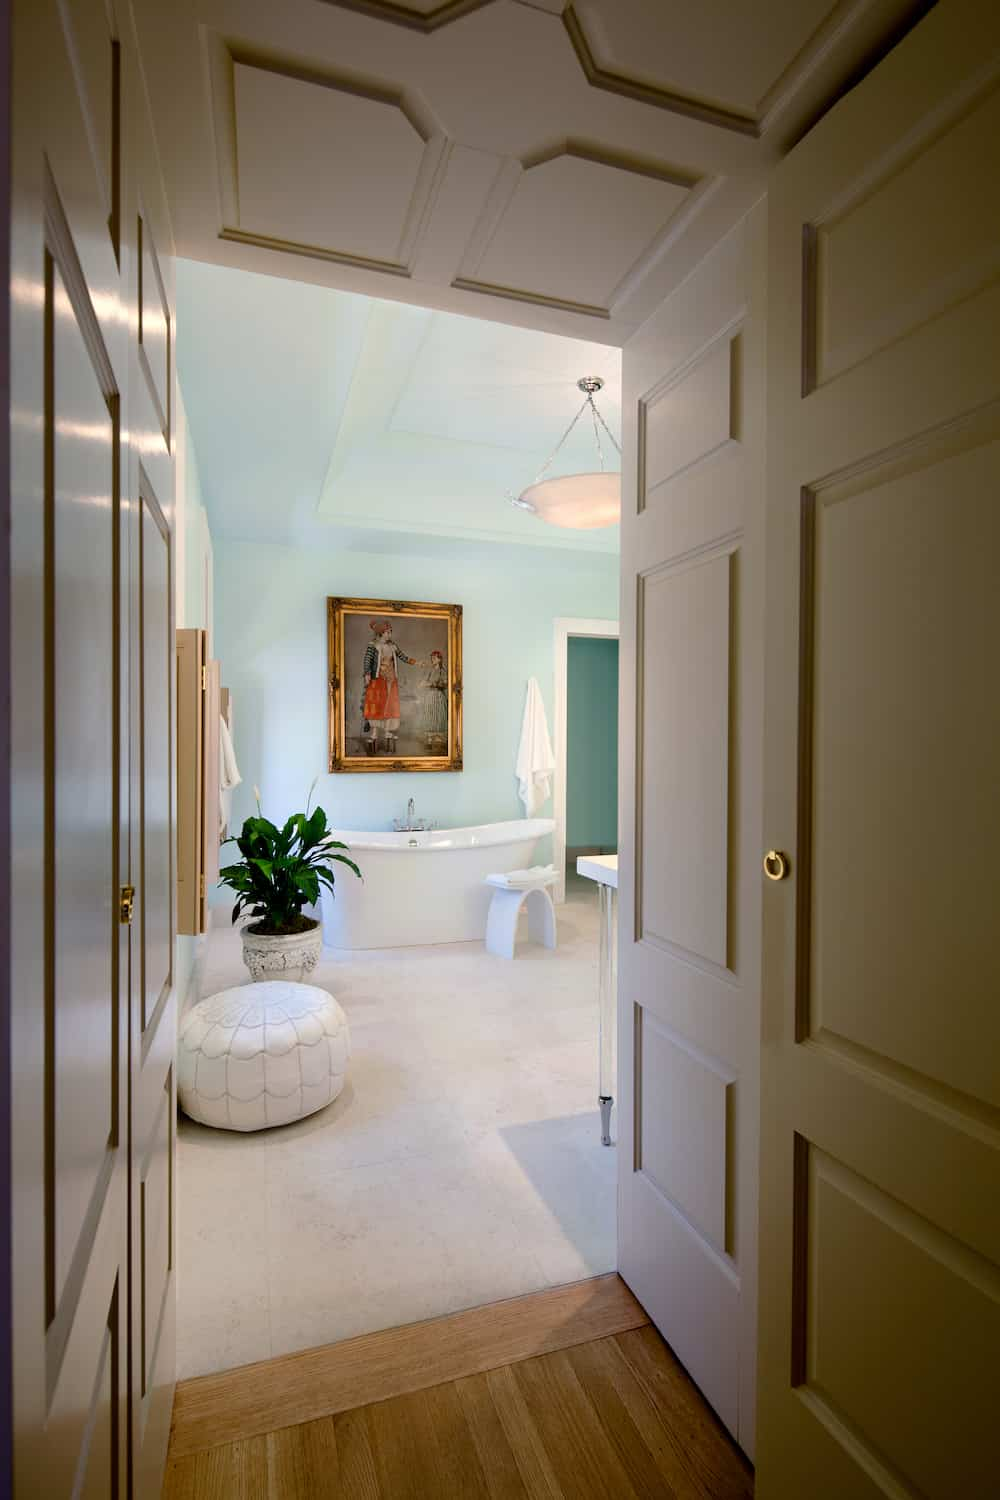 In the hallway leading to Suite Seven's Bathroom. The large tub is just below an oil painting.